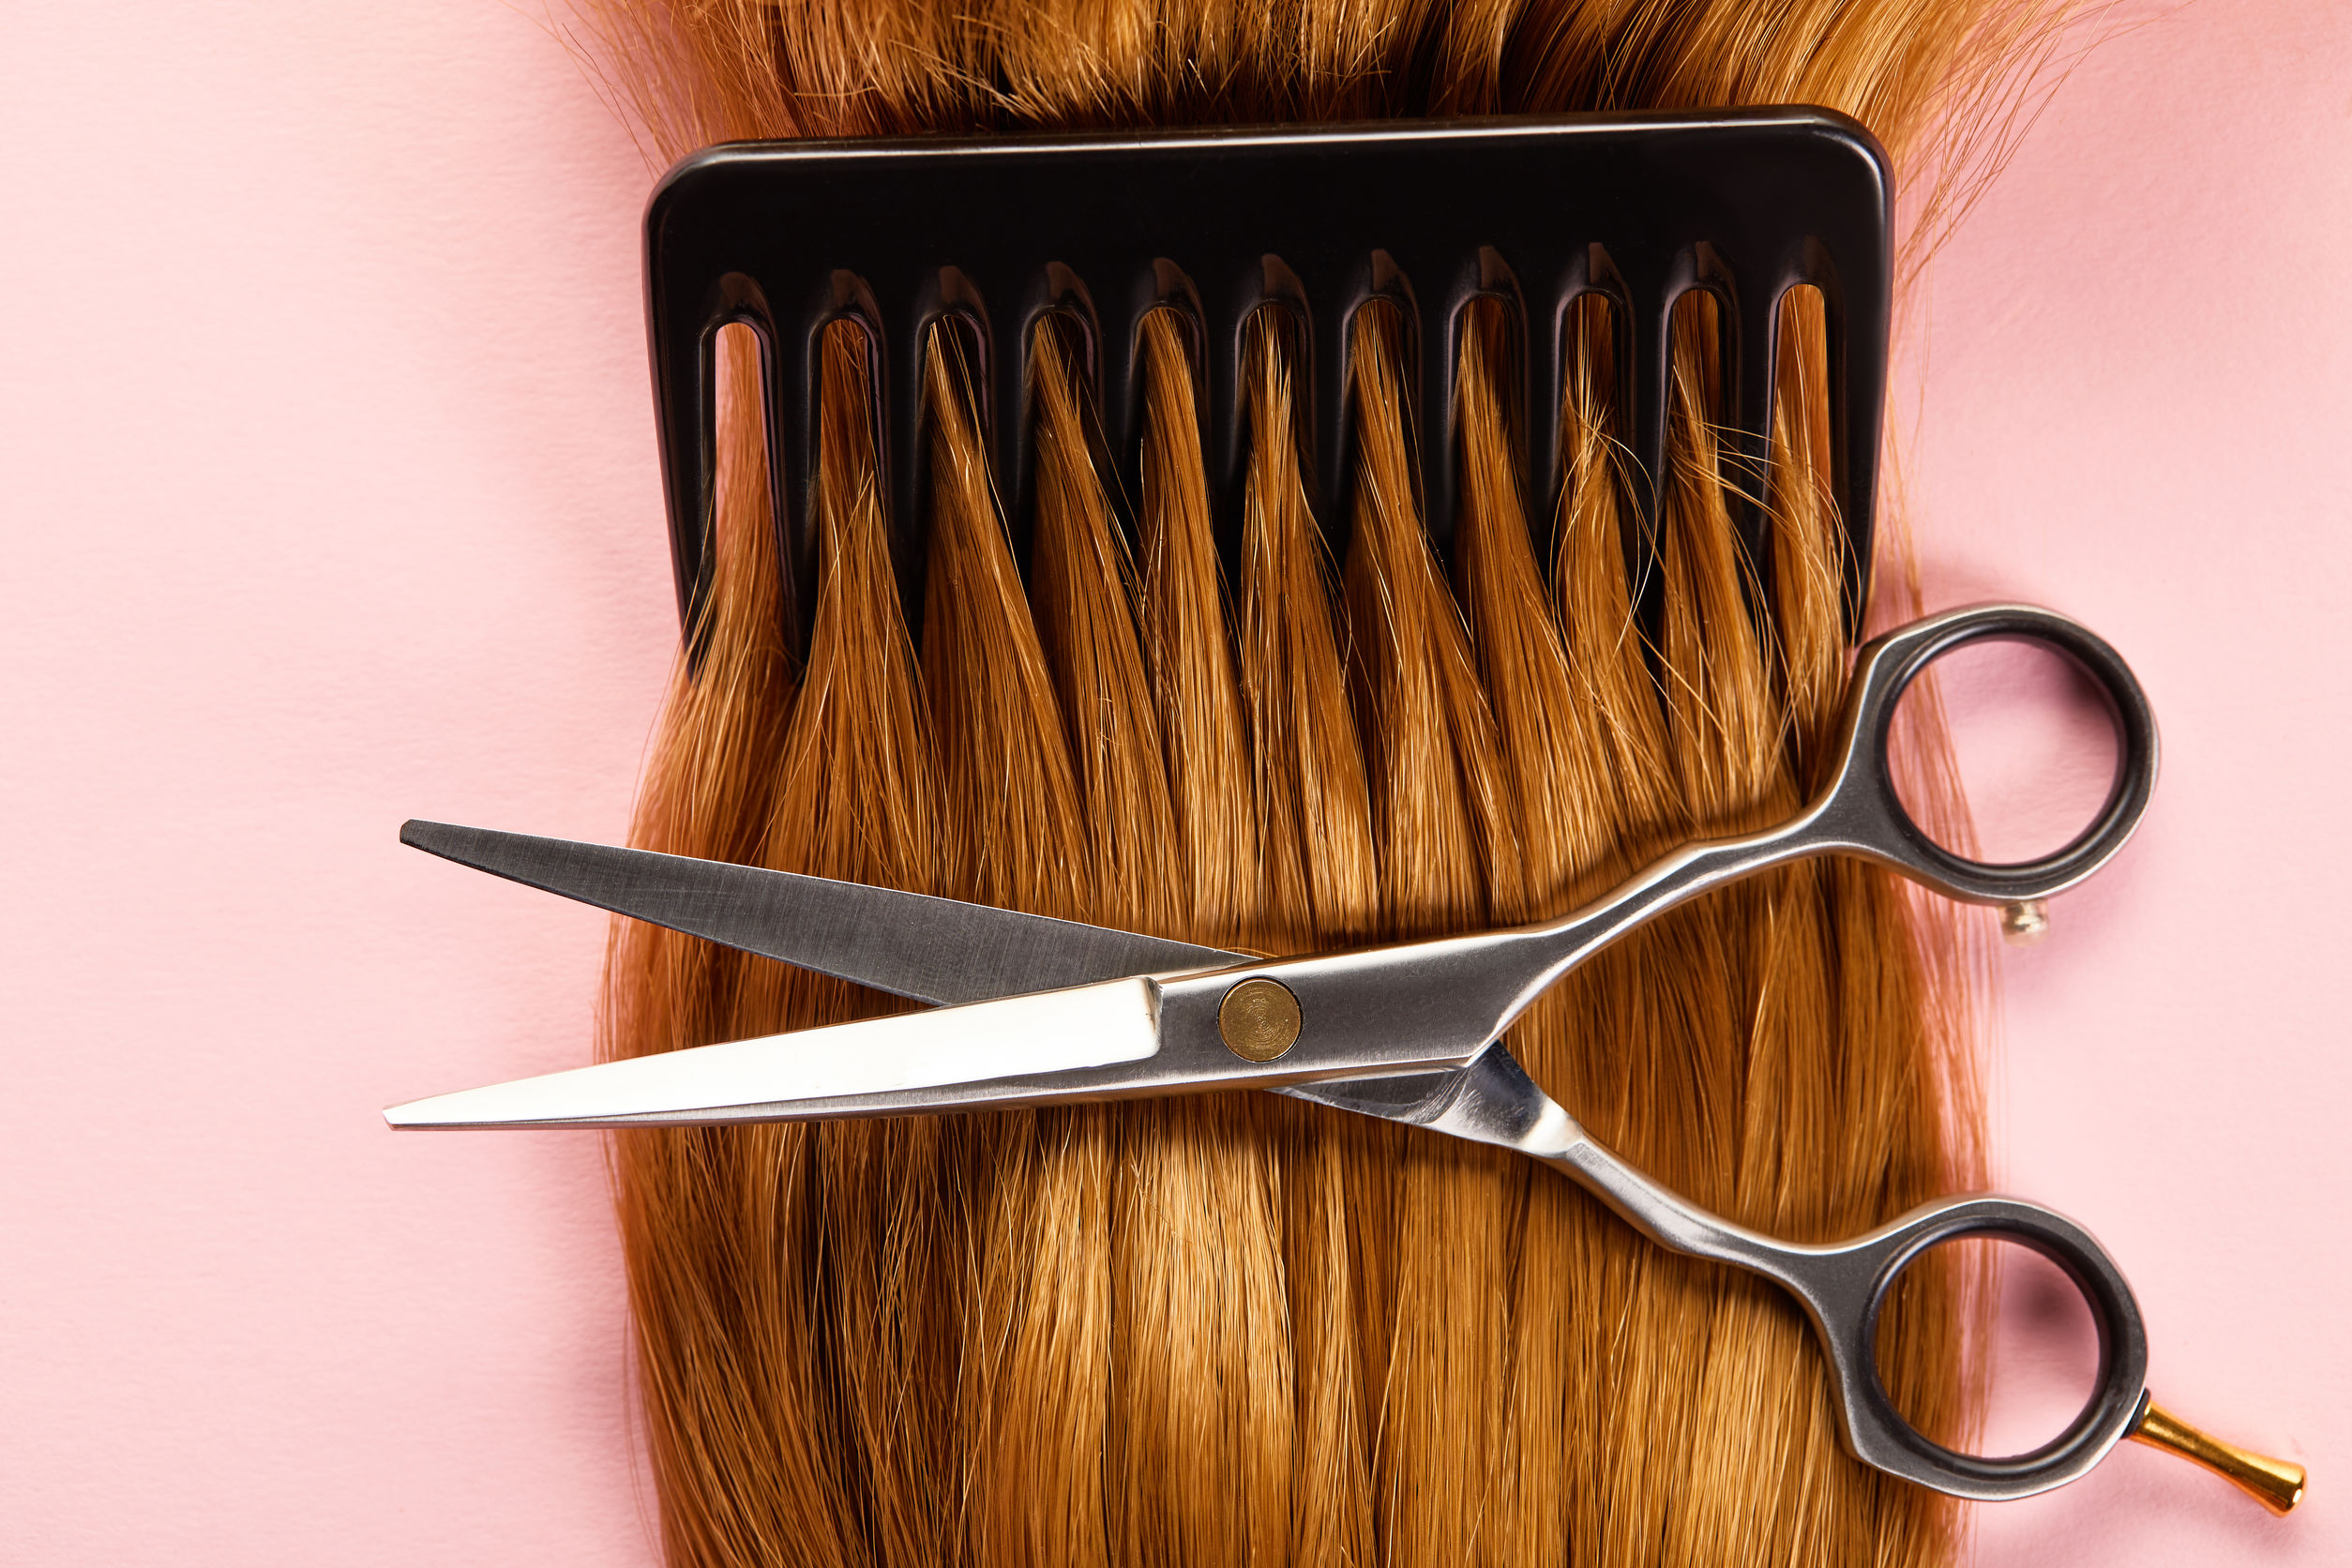 Top view of scissors, comb and brown hair on pink background